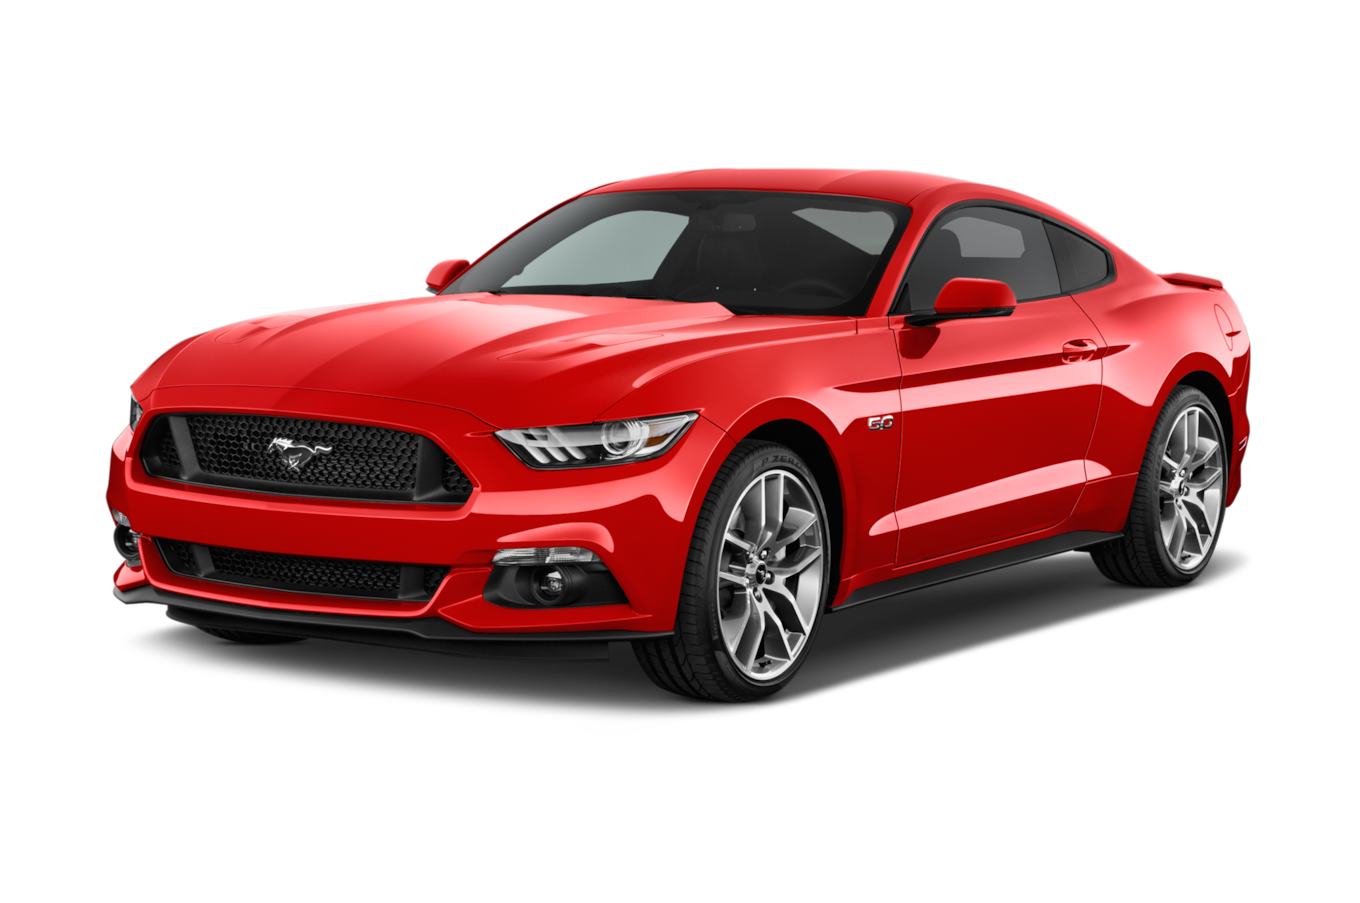 Mustang clipart muscle car. Hd transparentpng